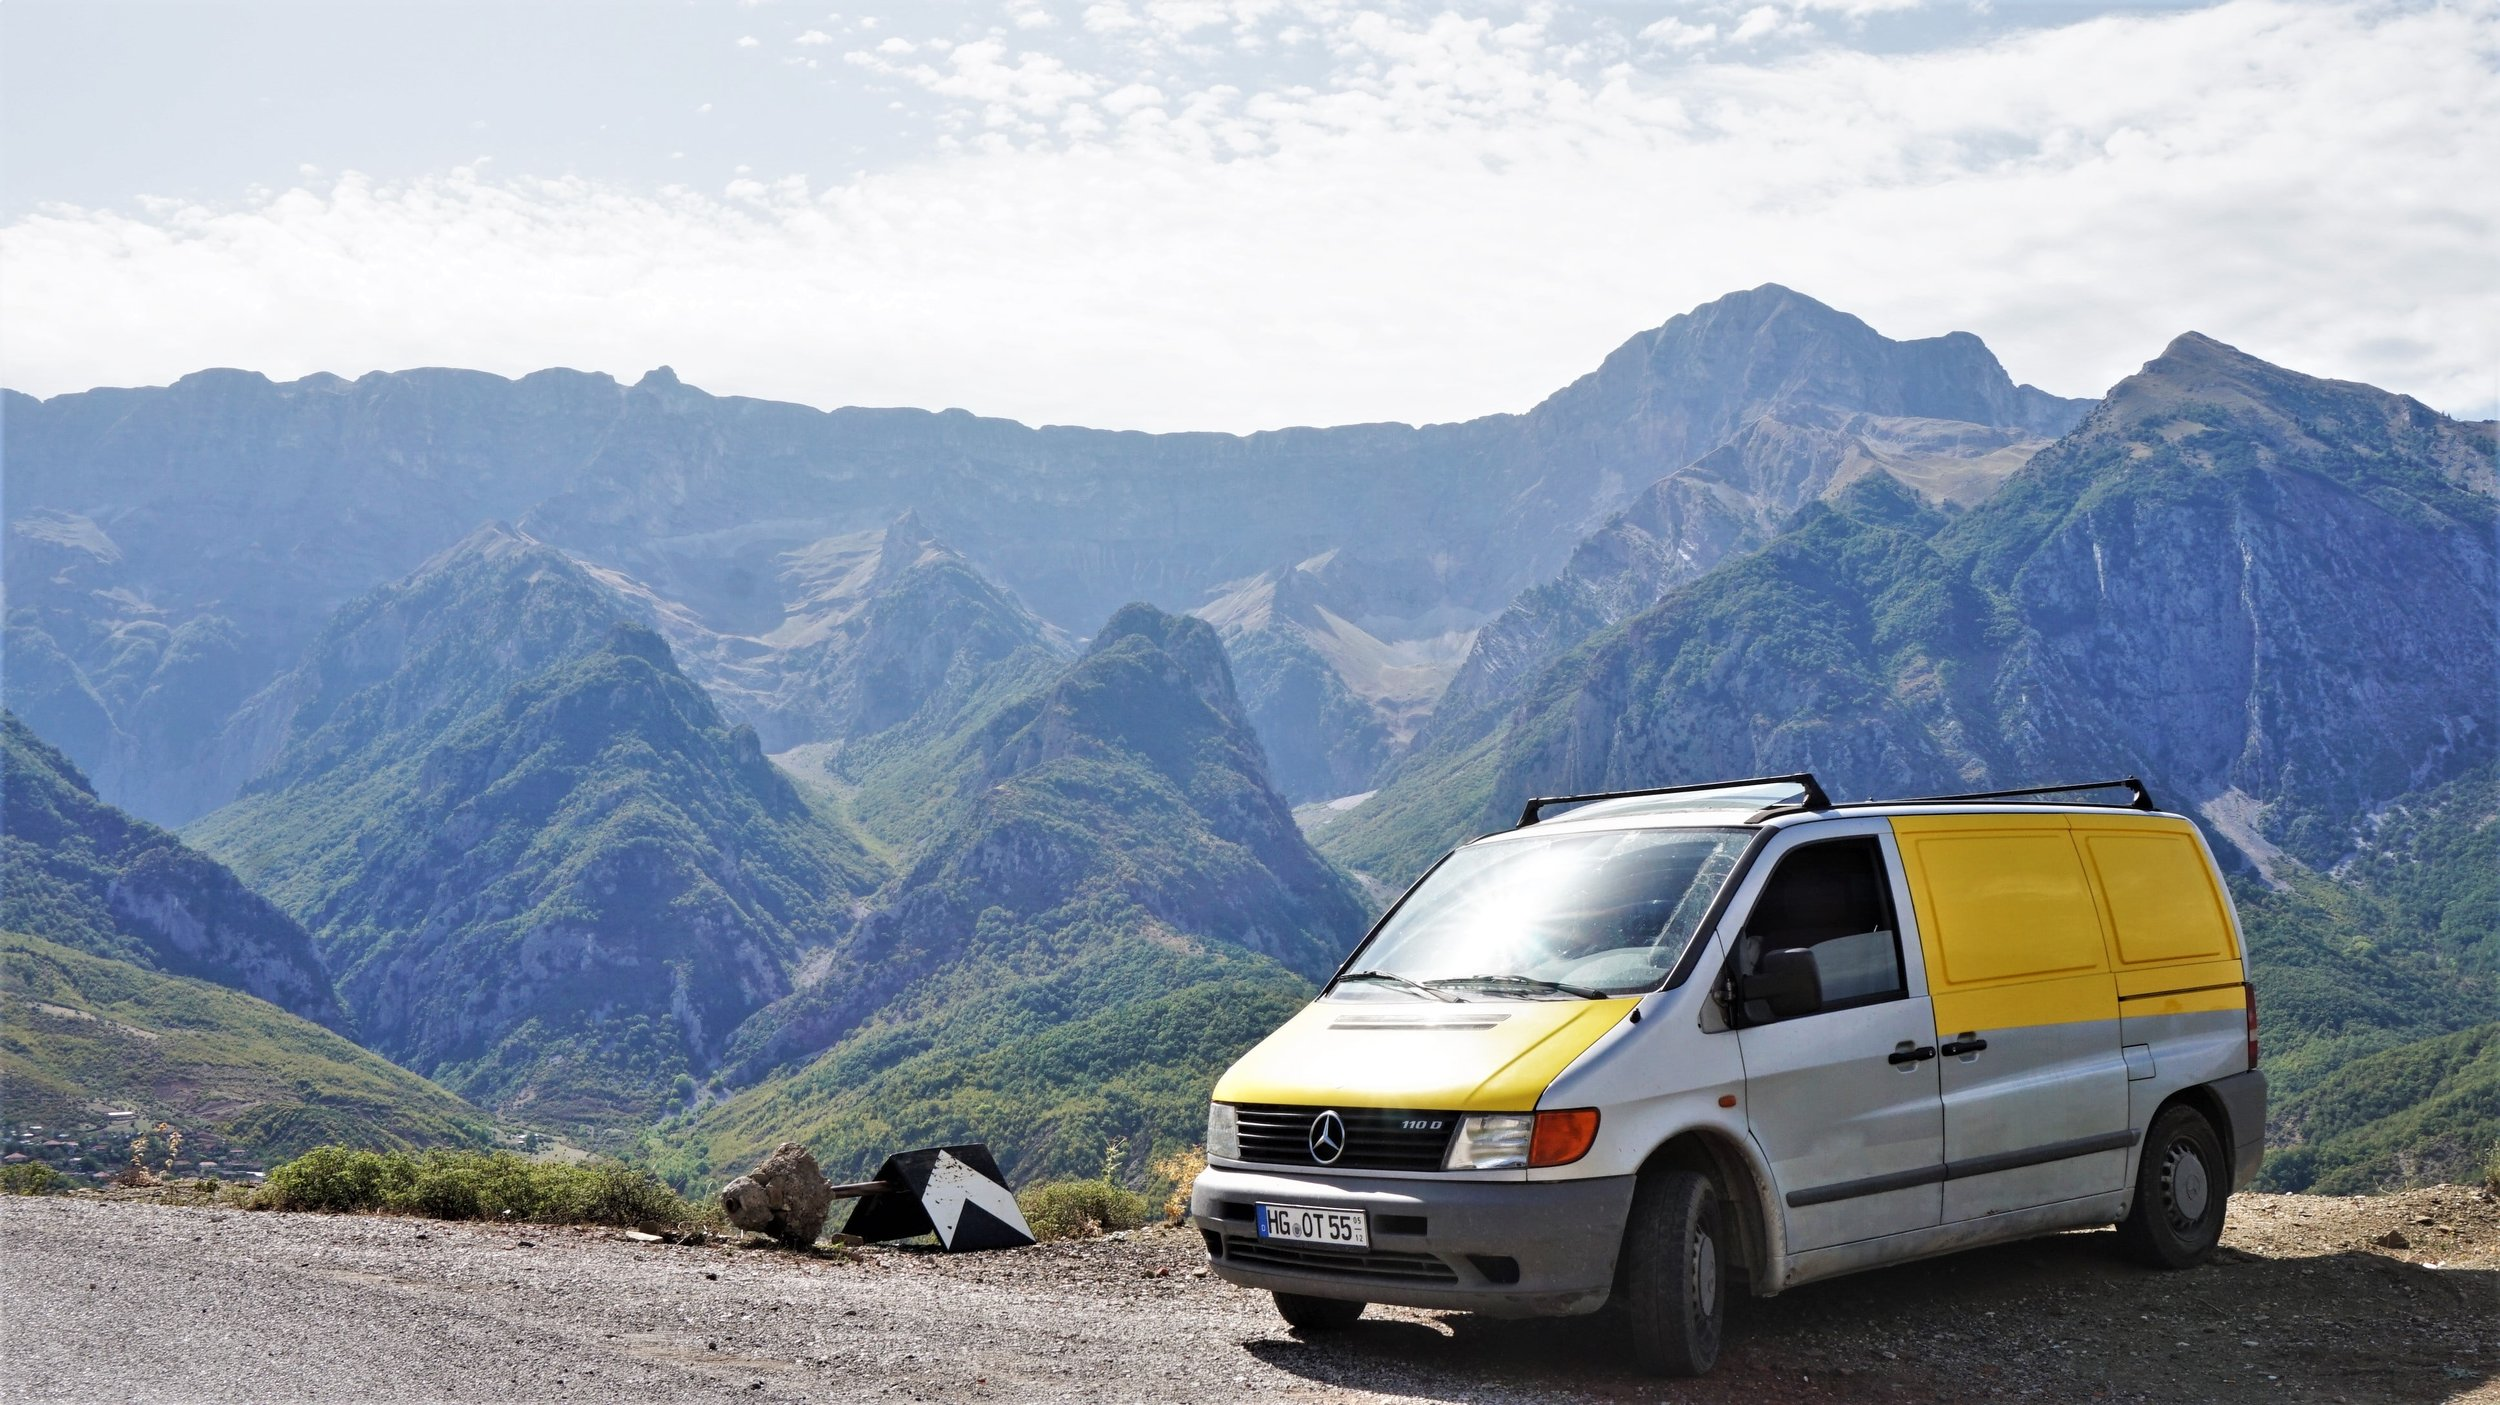 van pulled over on the side of the road while driving in the Balkans